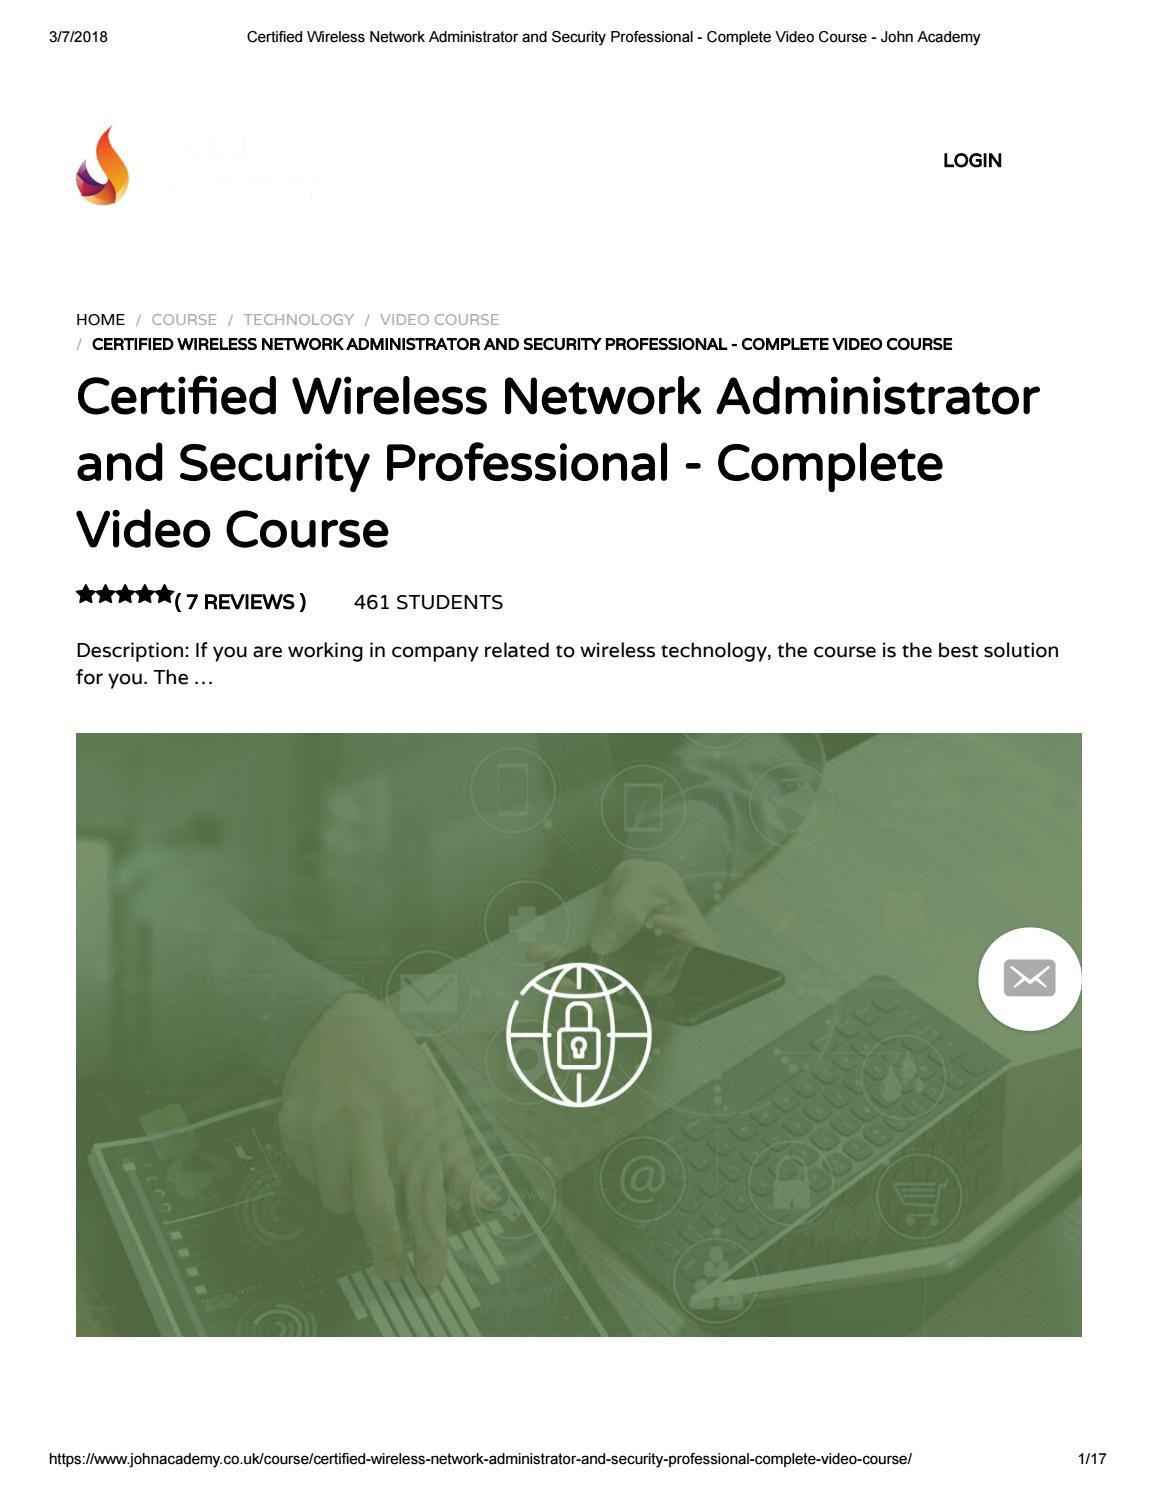 Certified Wireless Network Administrator And Security Professional